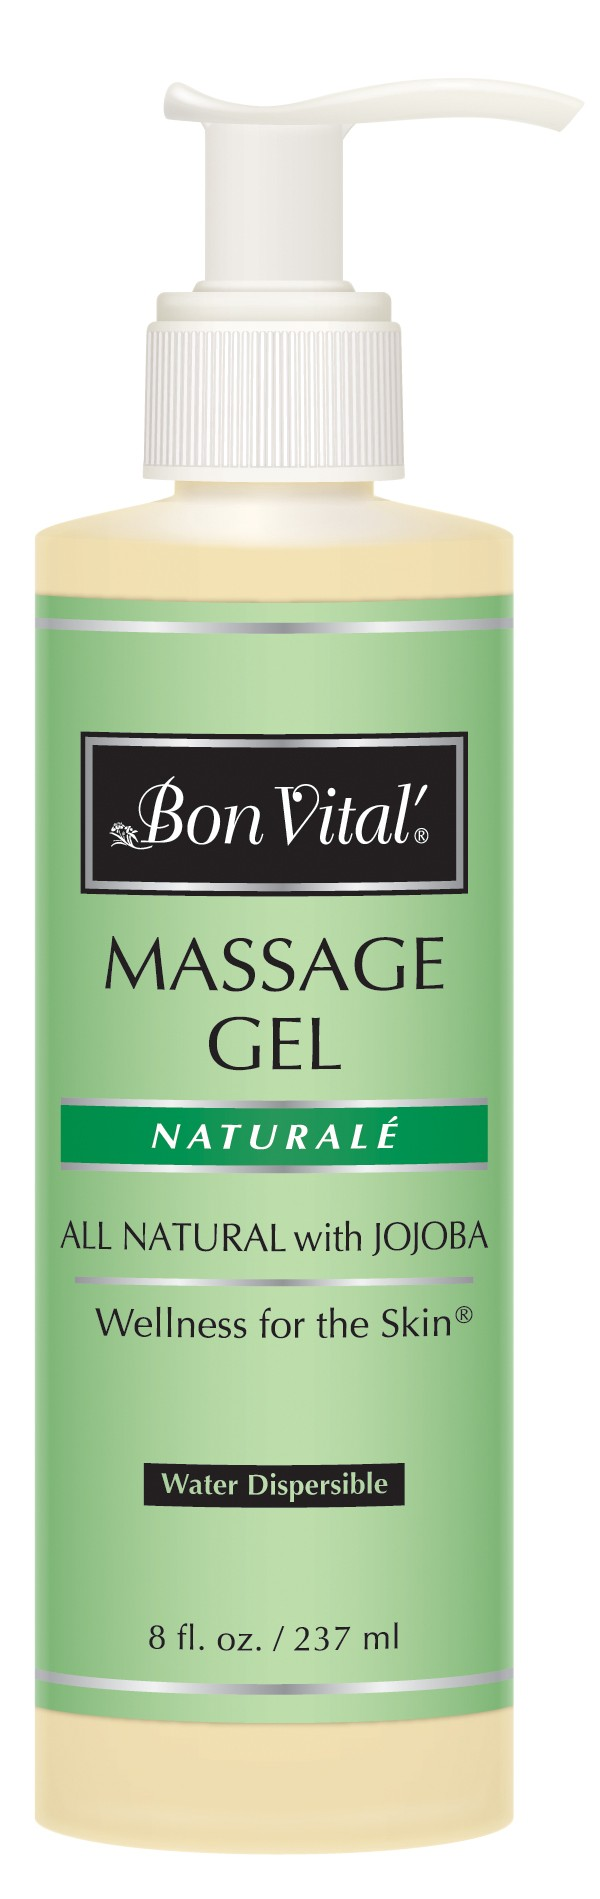 Bon Vital' Natural̩e Massage Gel 8 fl oz Bottle with Pump